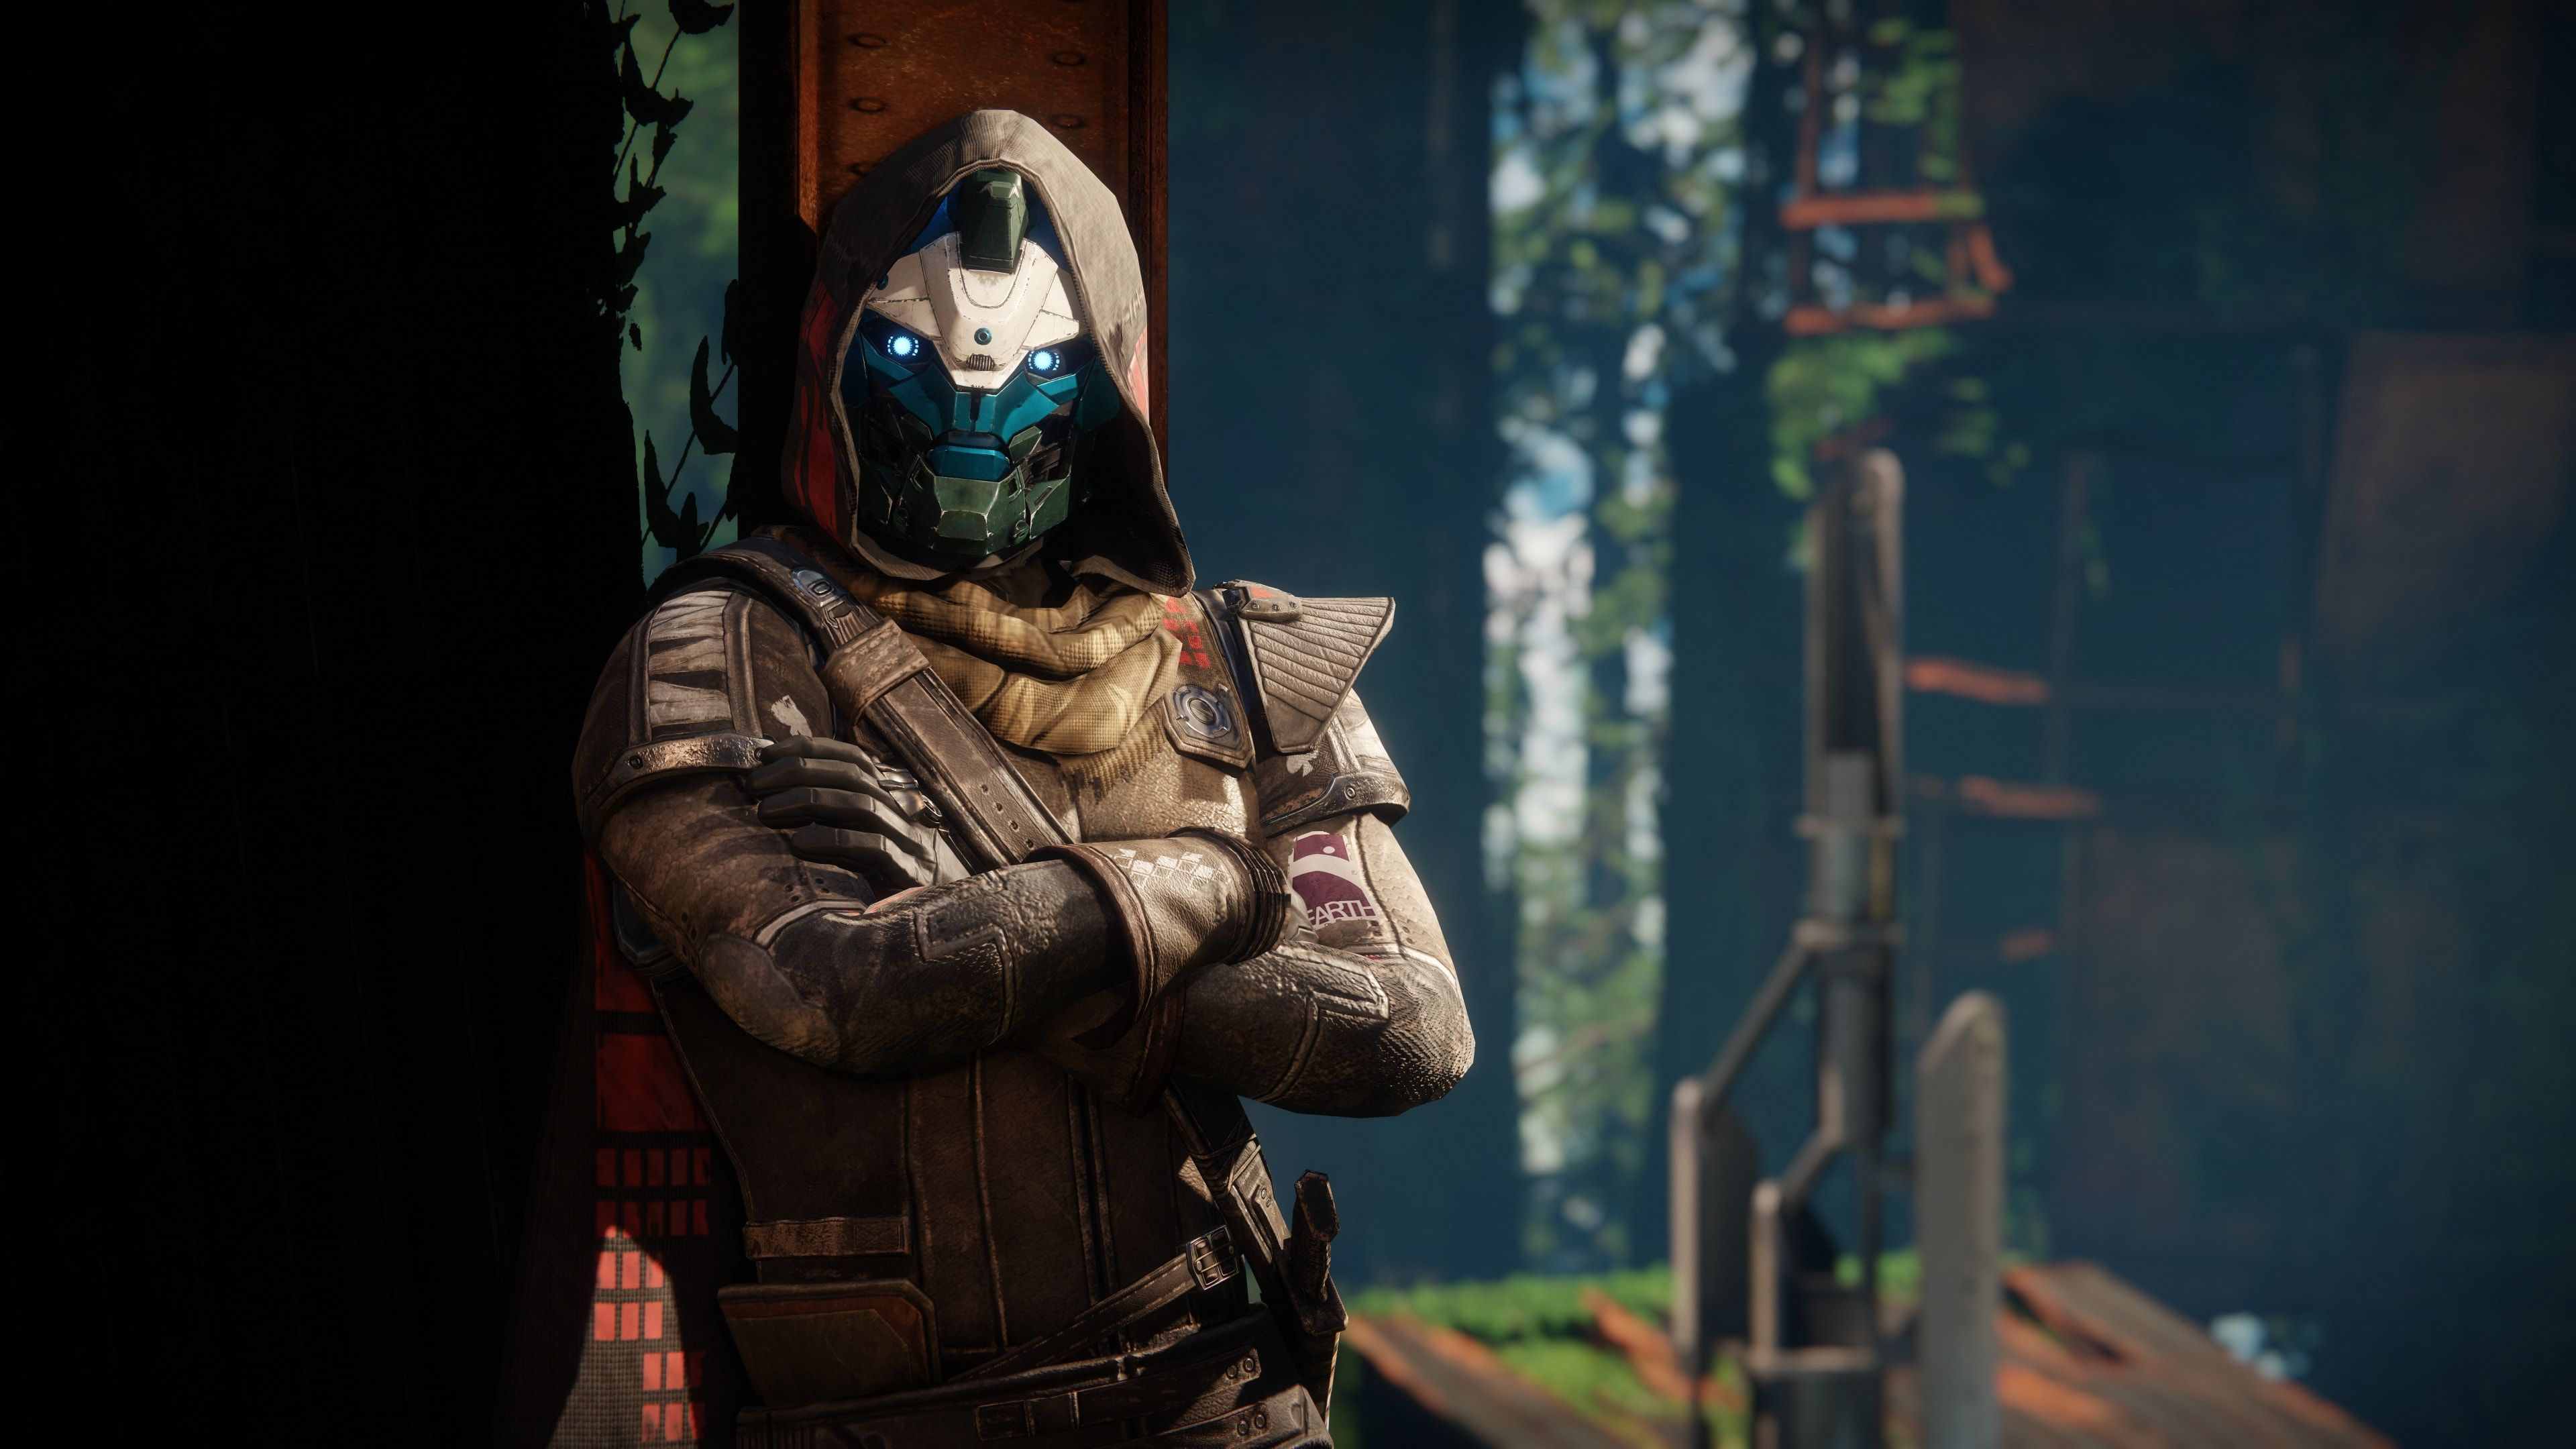 Destiny 2 Bungie Games 4k Bungie games, Gaming